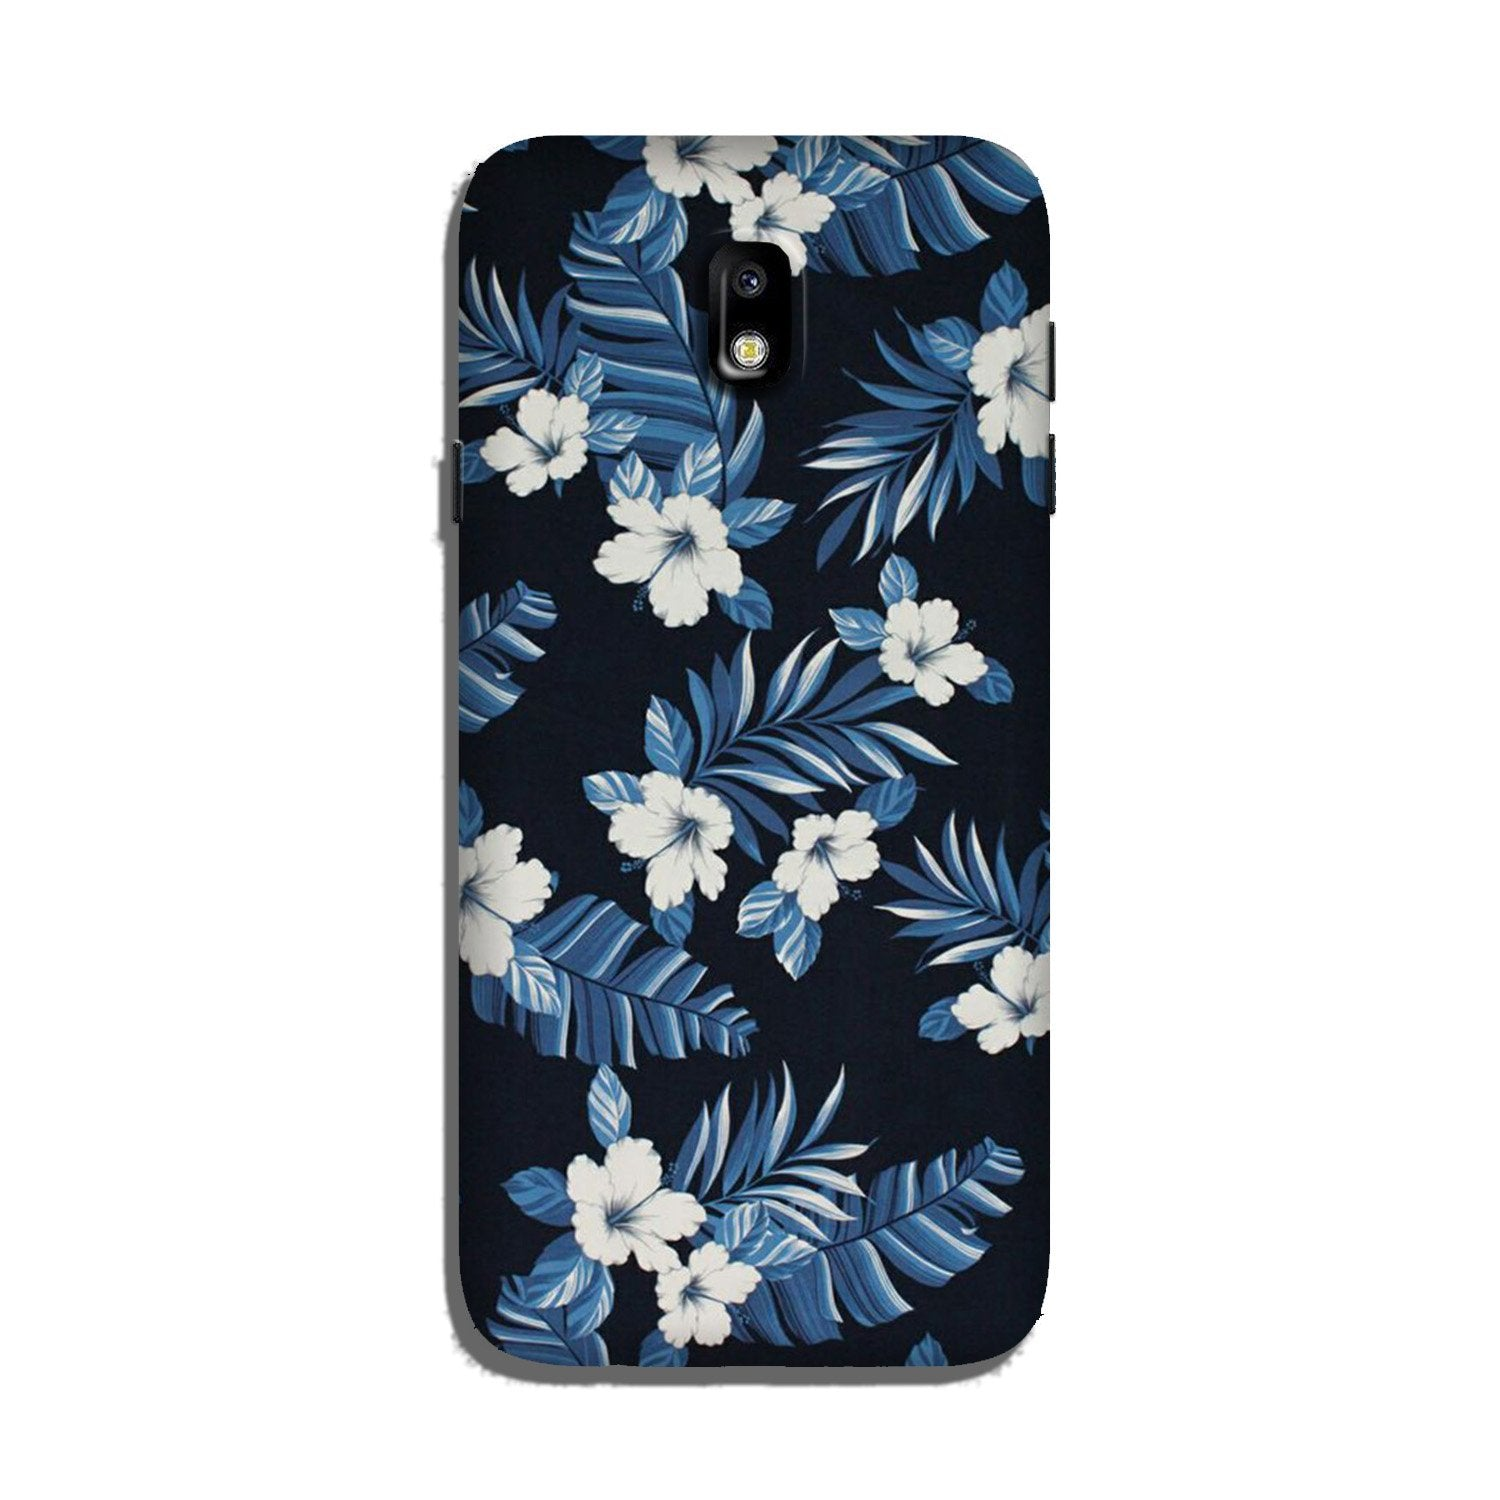 White flowers Blue Background2 Case for Galaxy J5 Pro